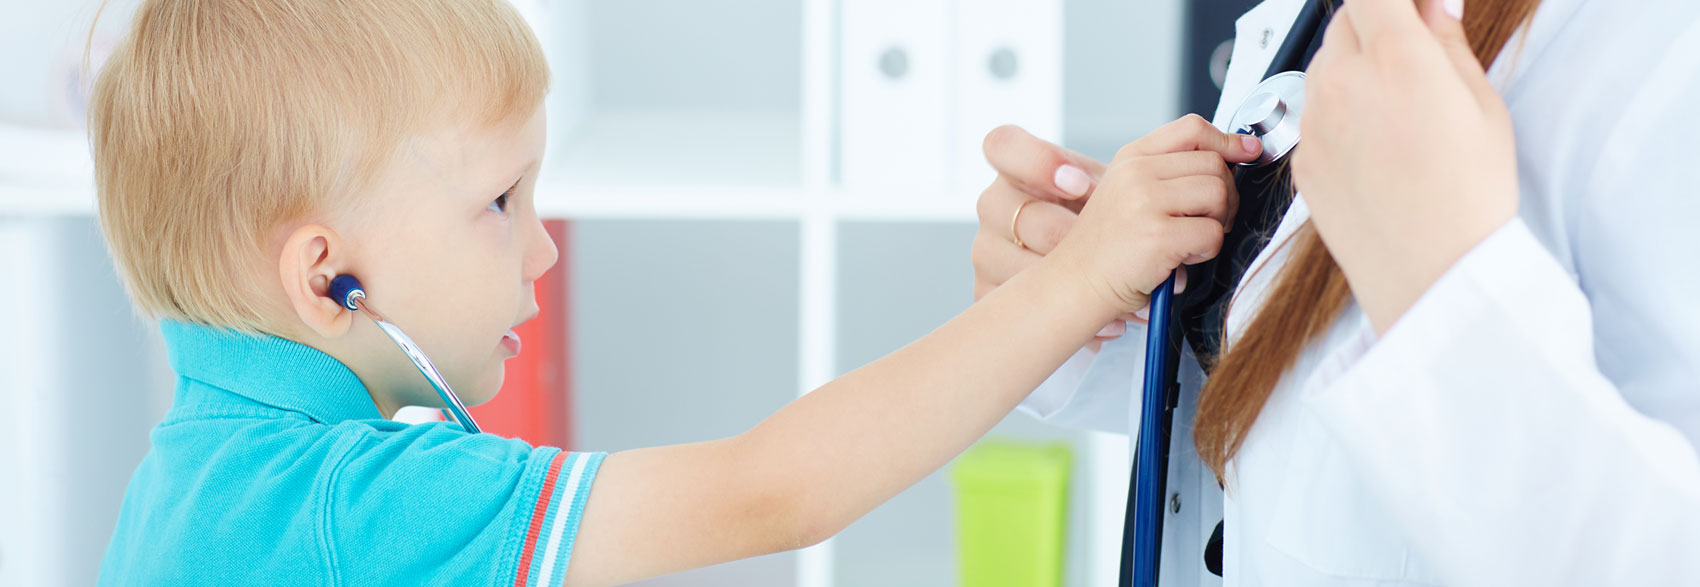 Slide Image child holding stethoscope